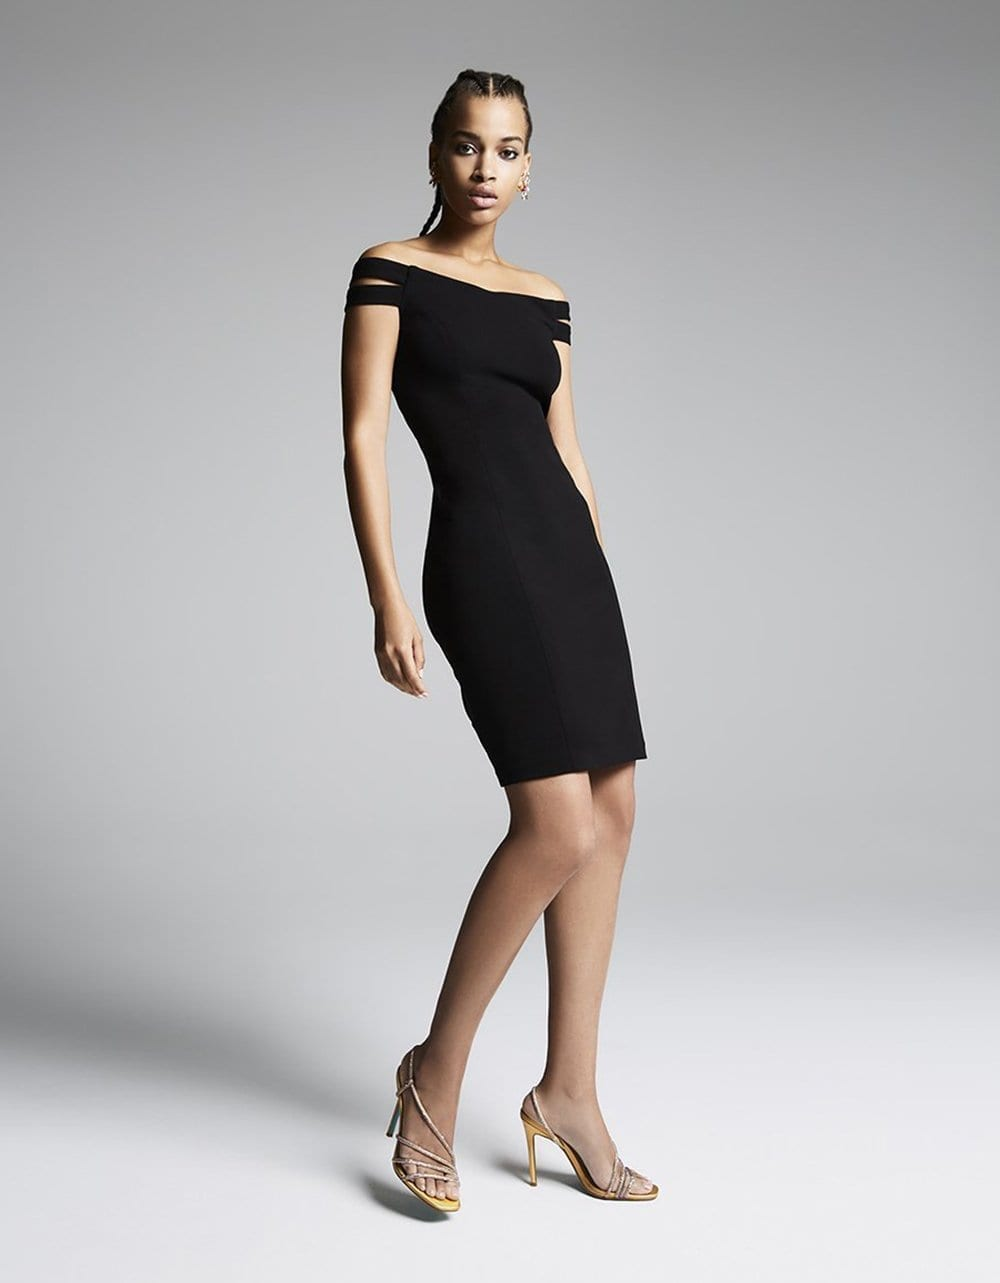 BETSY JOHNSON Bare Necessity Dress